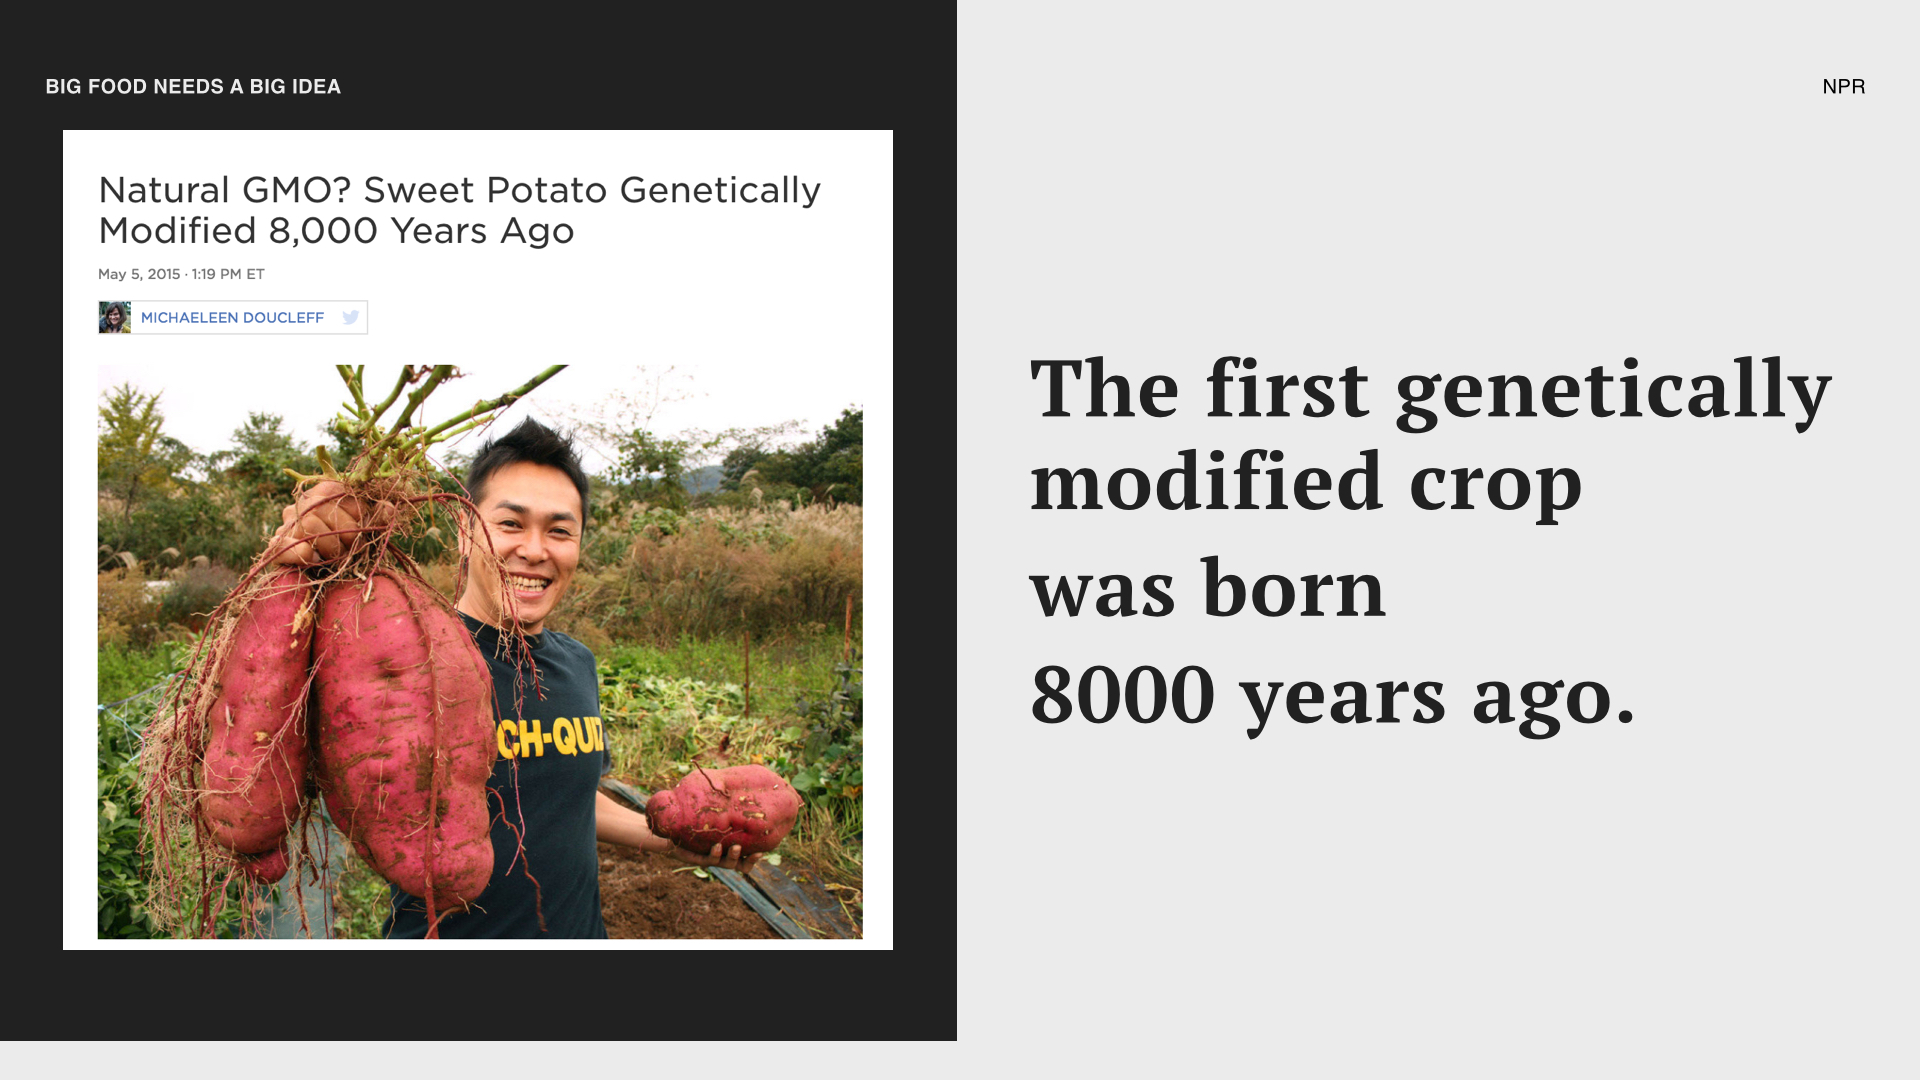 Did you know it wasn't a mega-corporation, who created the first genetically modified crop? 8,000 years ago nature was the engineer, allowing a new root to form from a particular formula of soil and bacteria. And the result is sweet potatoes all around the world.